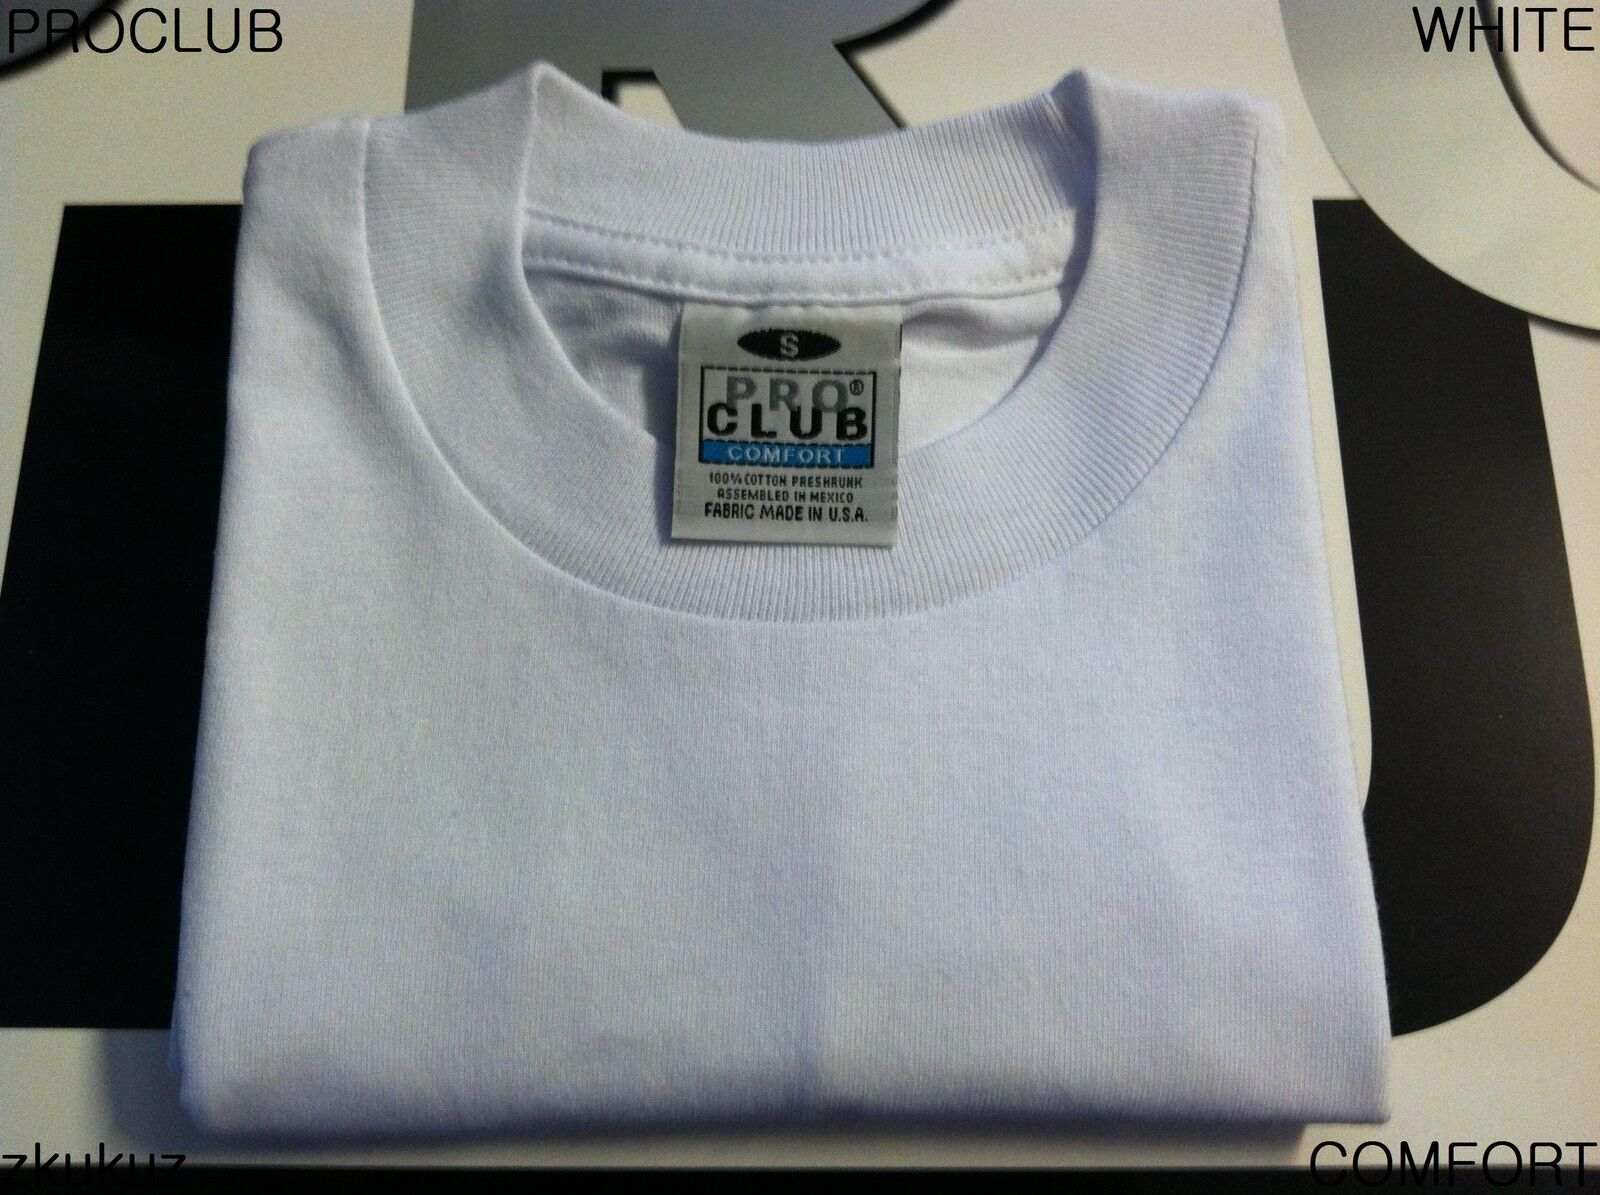 12 NEW PROCLUB COMFORT PLAIN T-SHIRT BLANK WHITE TEE PRO CLUB 3X-LARGE 3XL 12PC